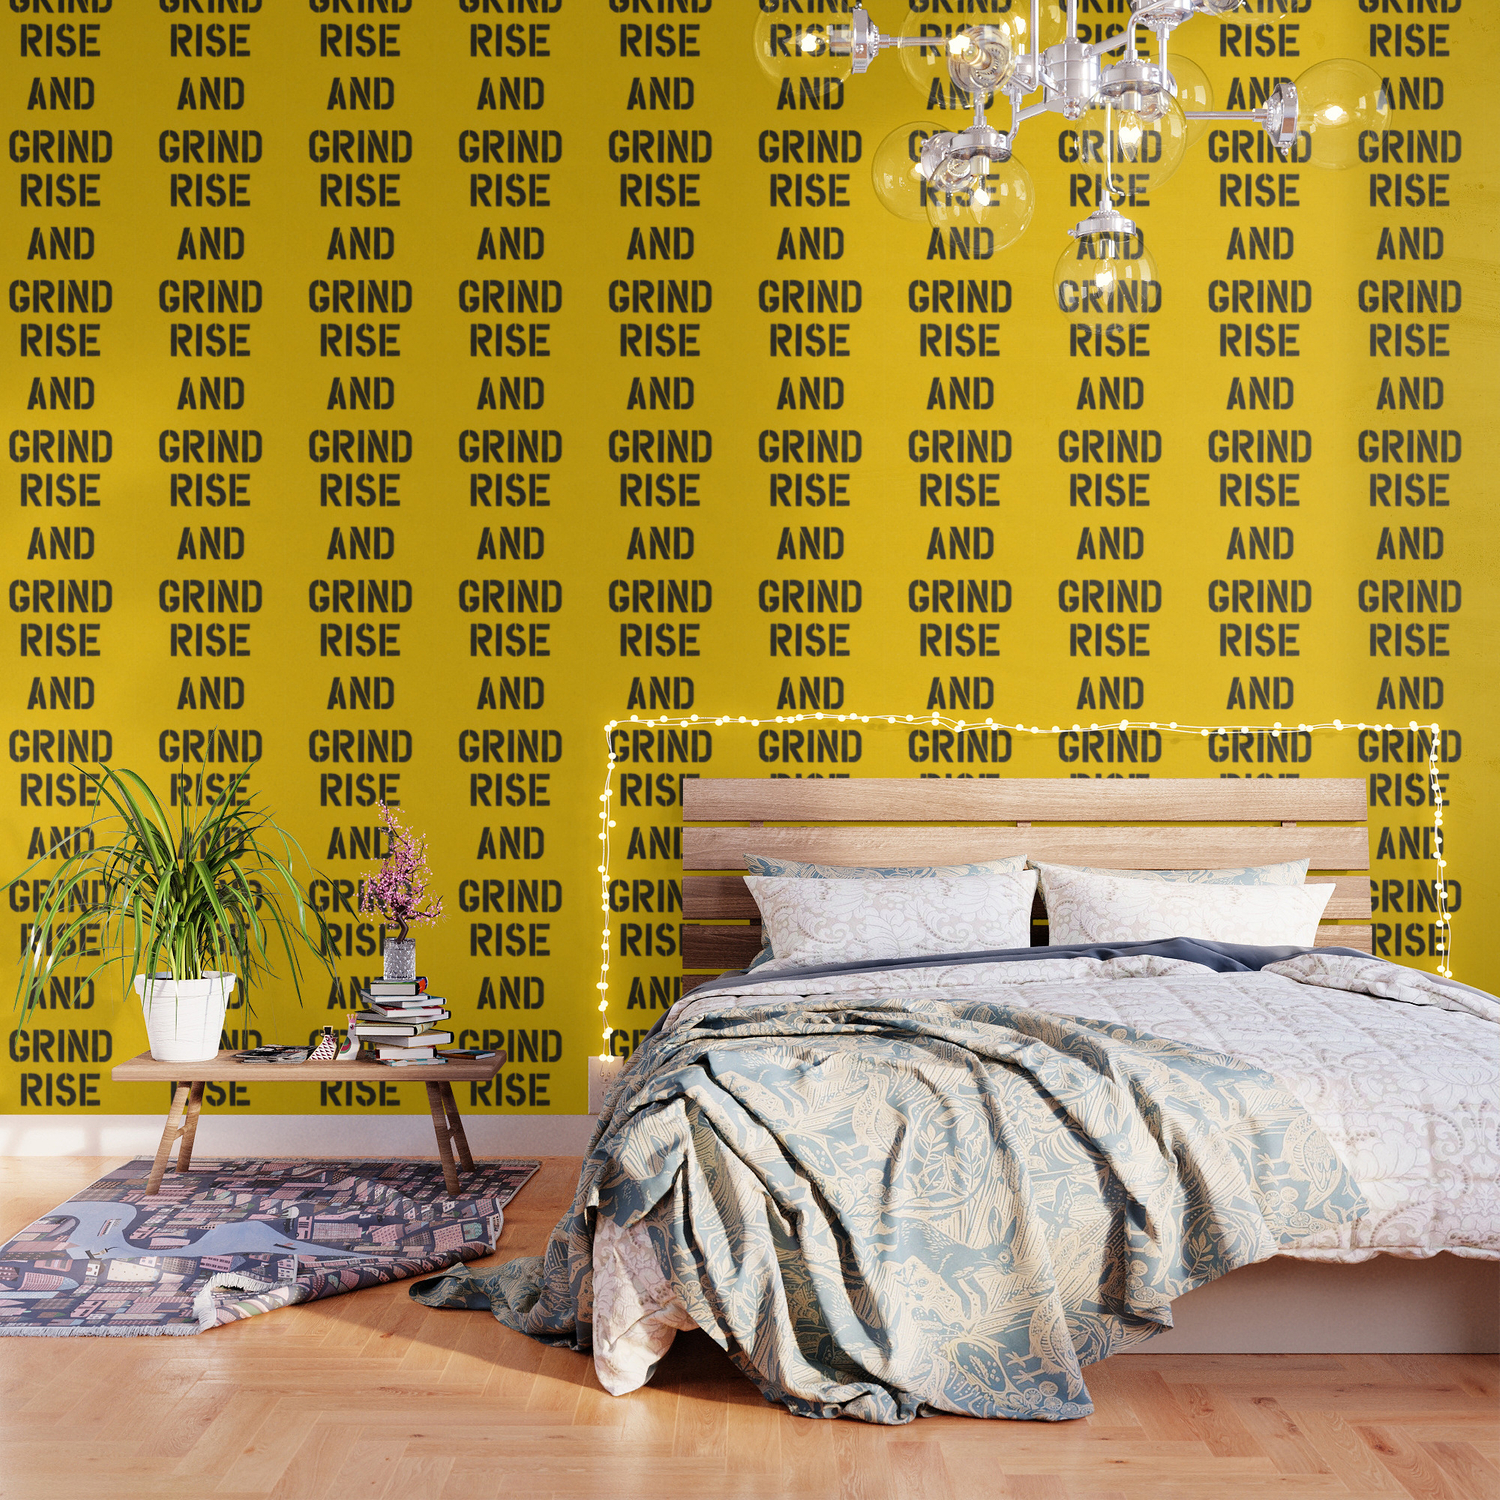 Rise And Grind Black White Yellow Typography Poster Bedroom Wall Home Decor Wallpaper By Themotivatedtype Society6